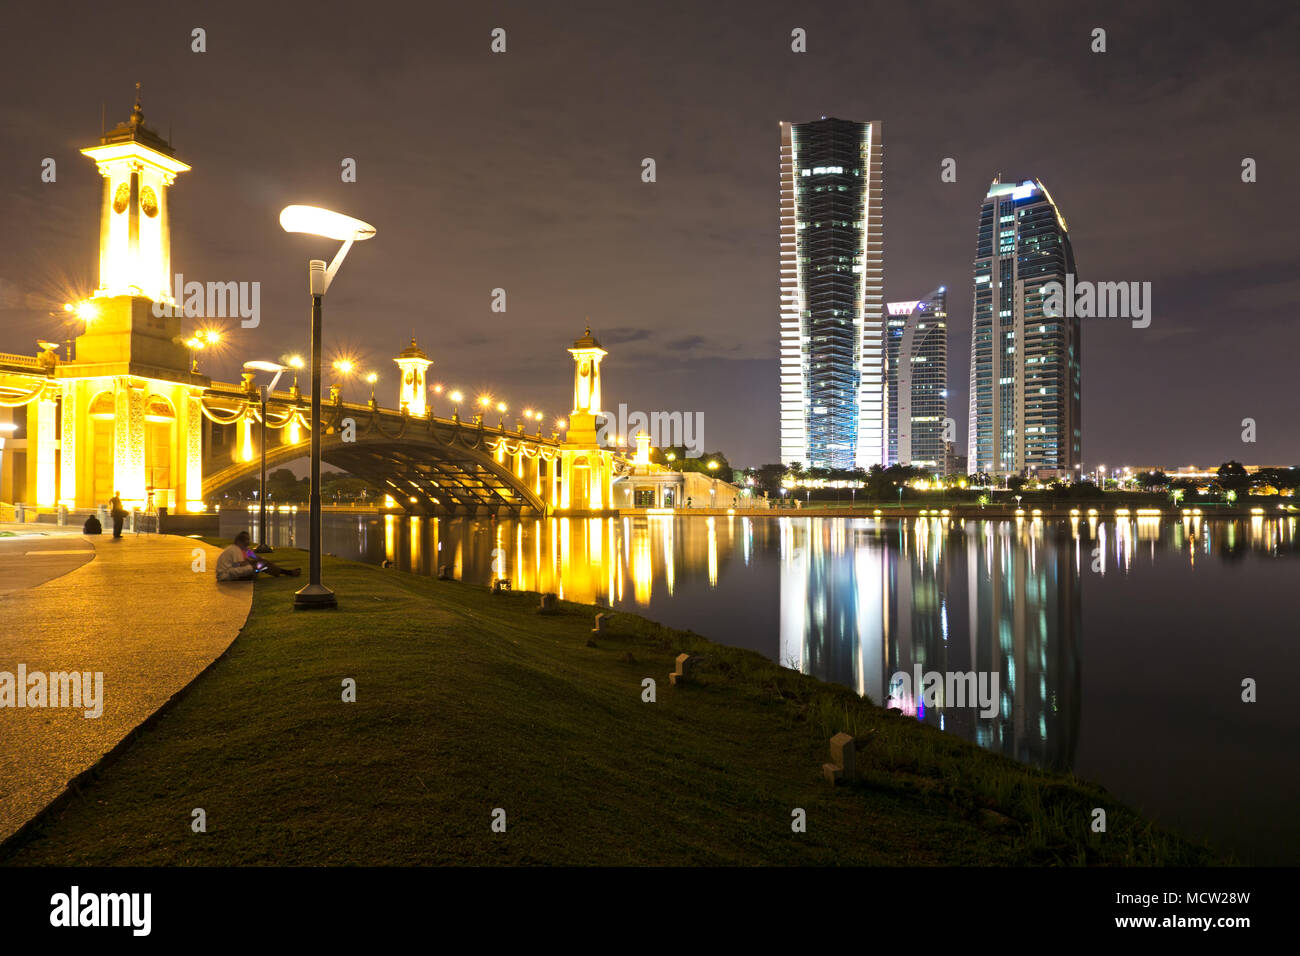 Putrajaya night view, Federal territory of Malaysia. - Stock Image